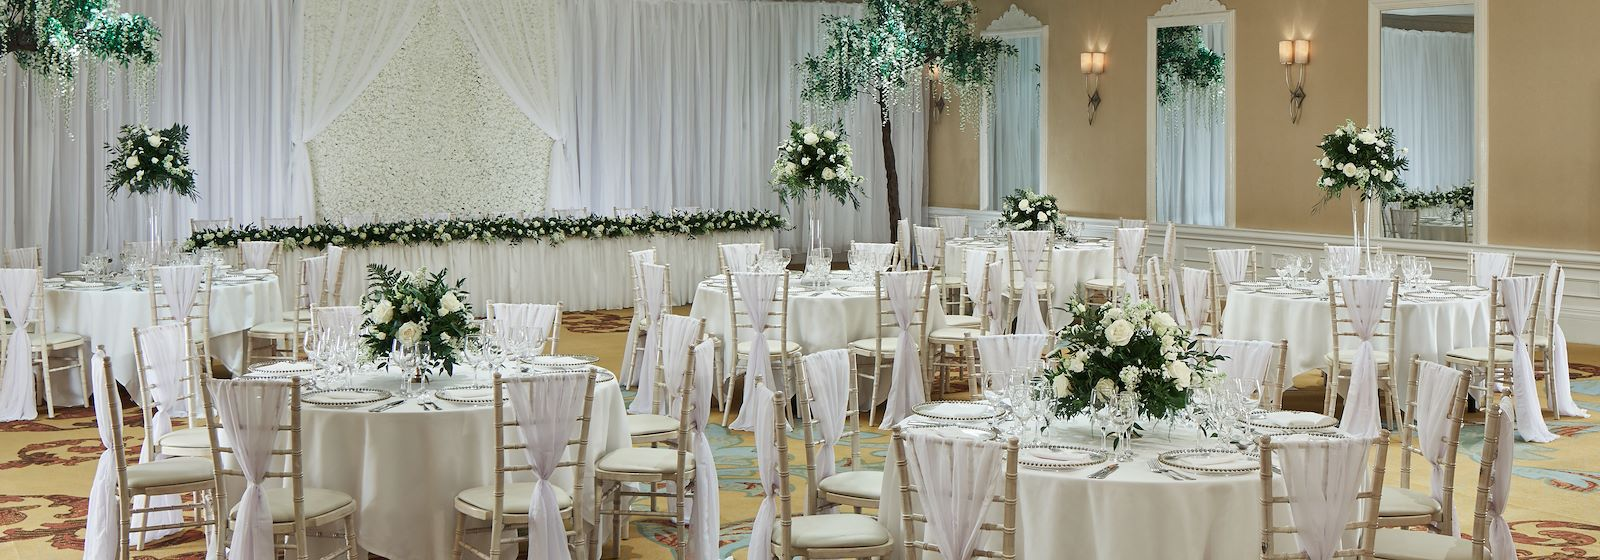 st. pierre marriott hotel and country club wedding venue